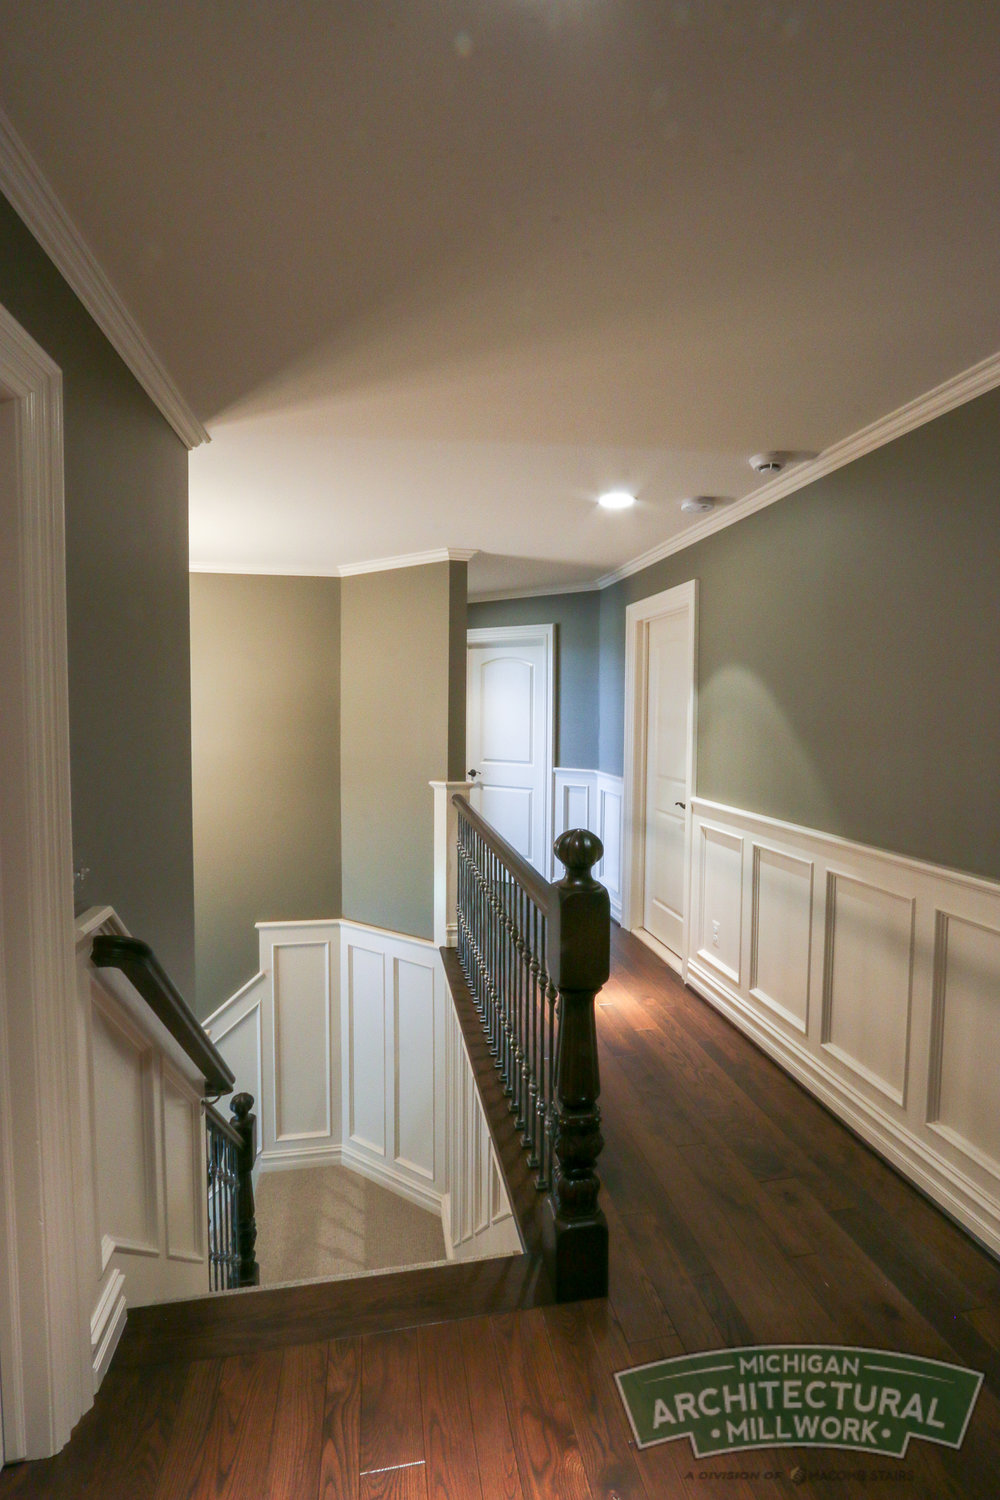 Michigan Architectural Millwork- Moulding and Millwork Photo-193.jpg